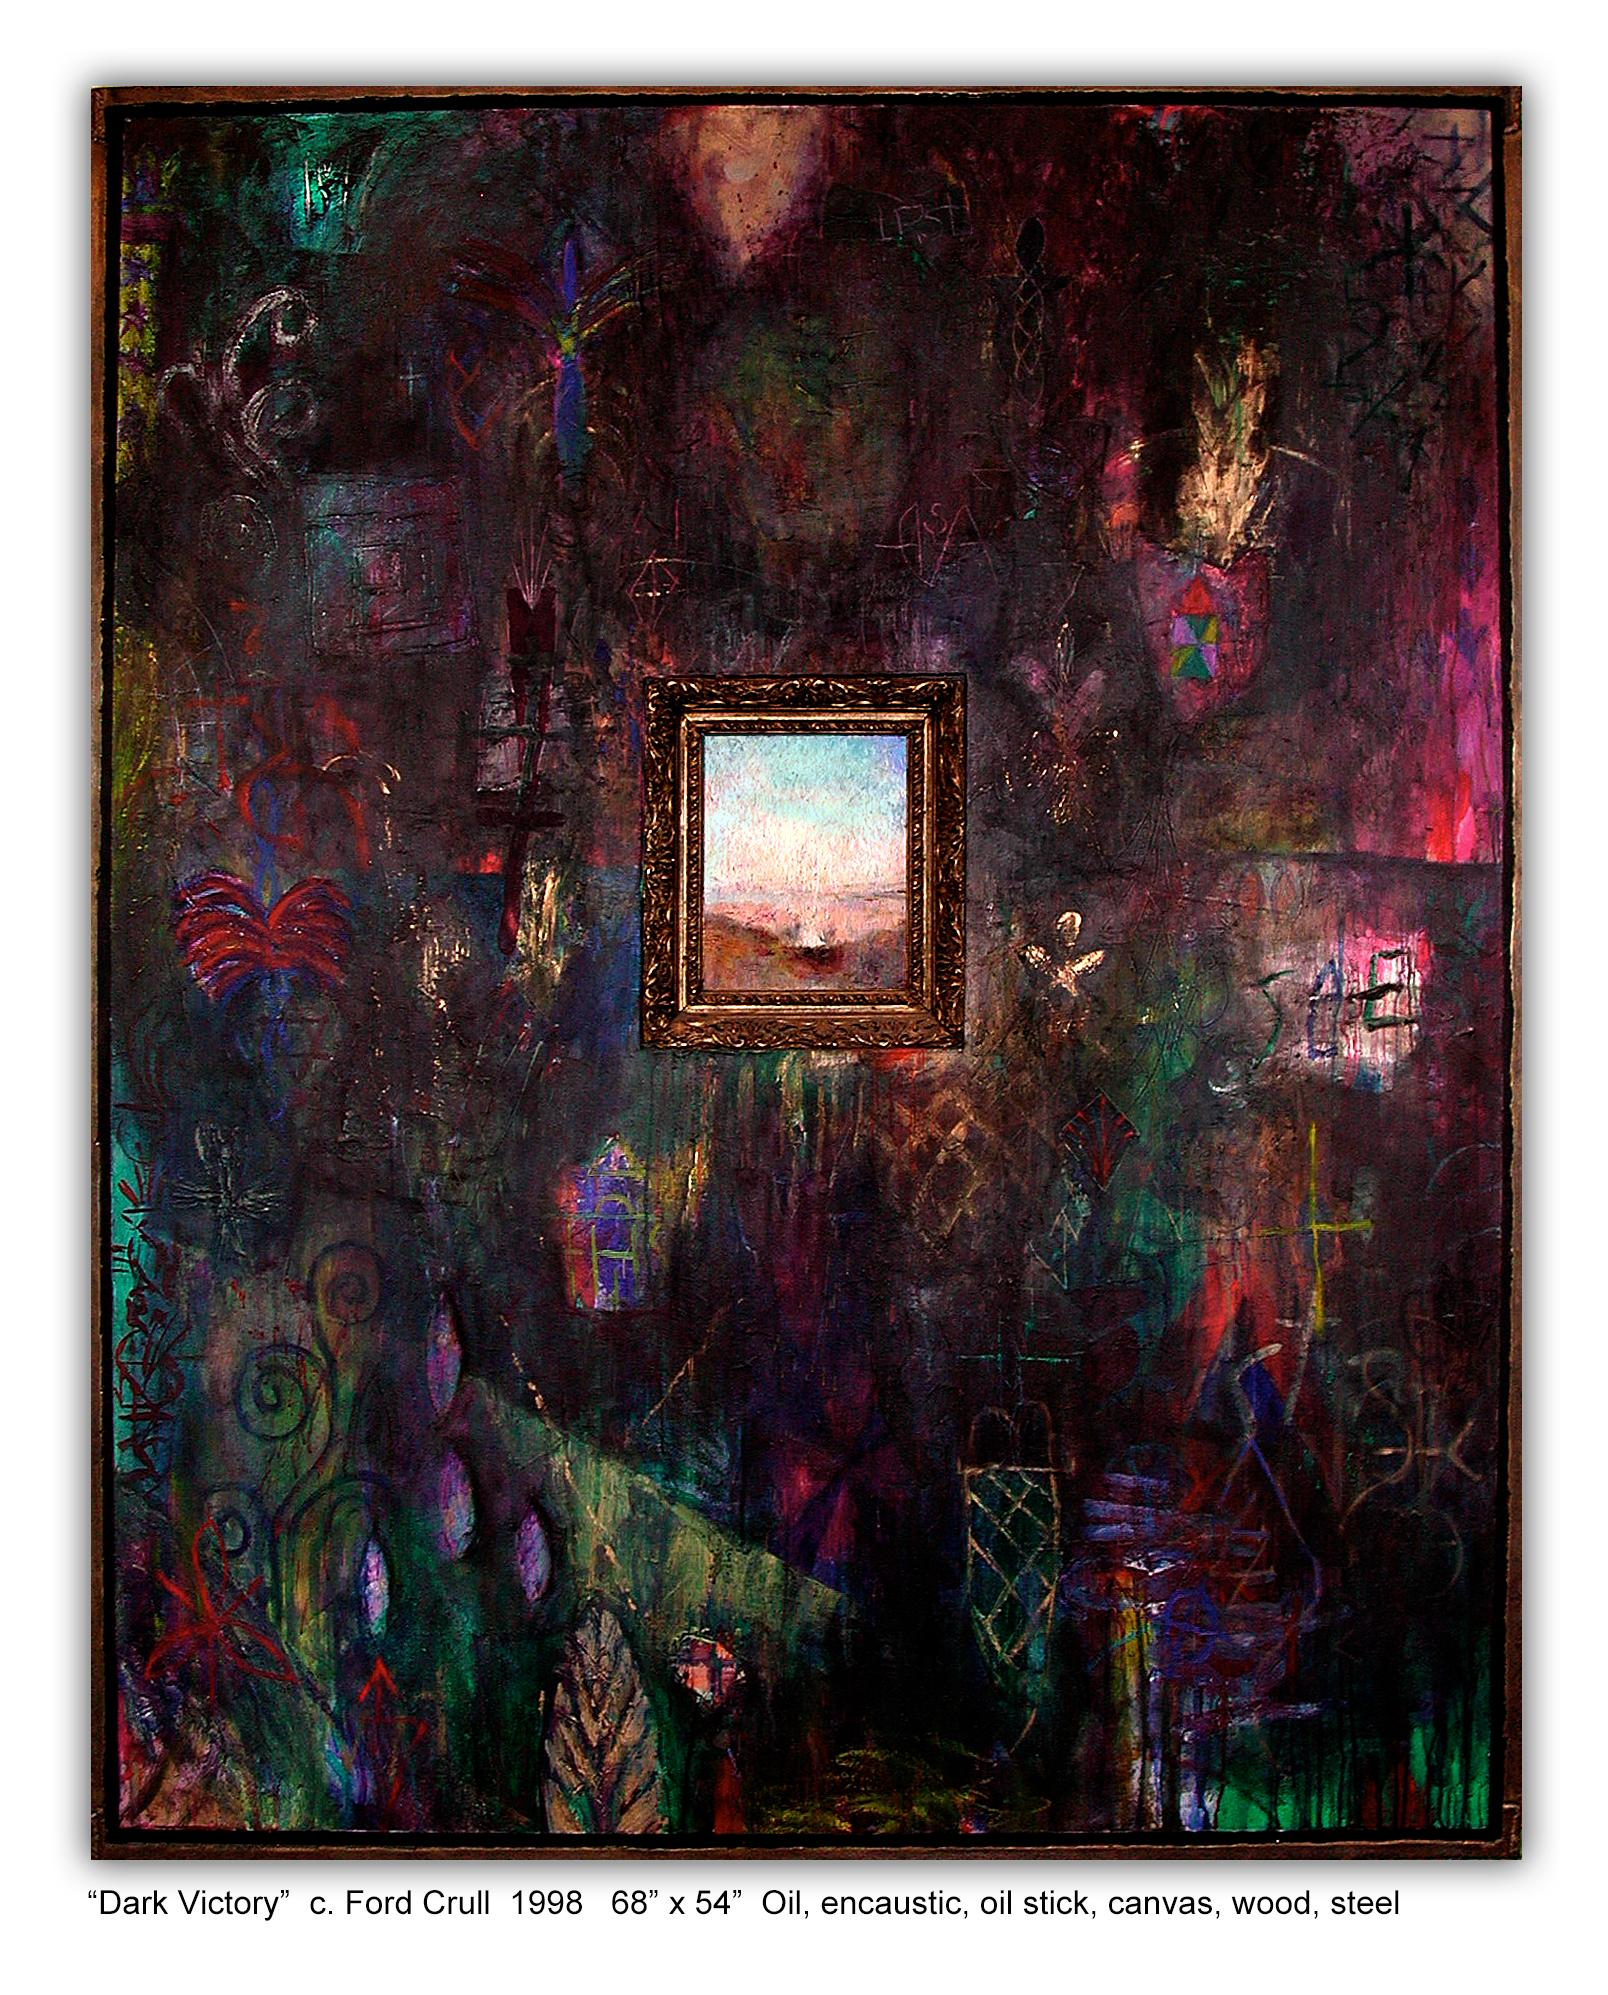 DARK VICTORY - large dark abstract painting with symbols